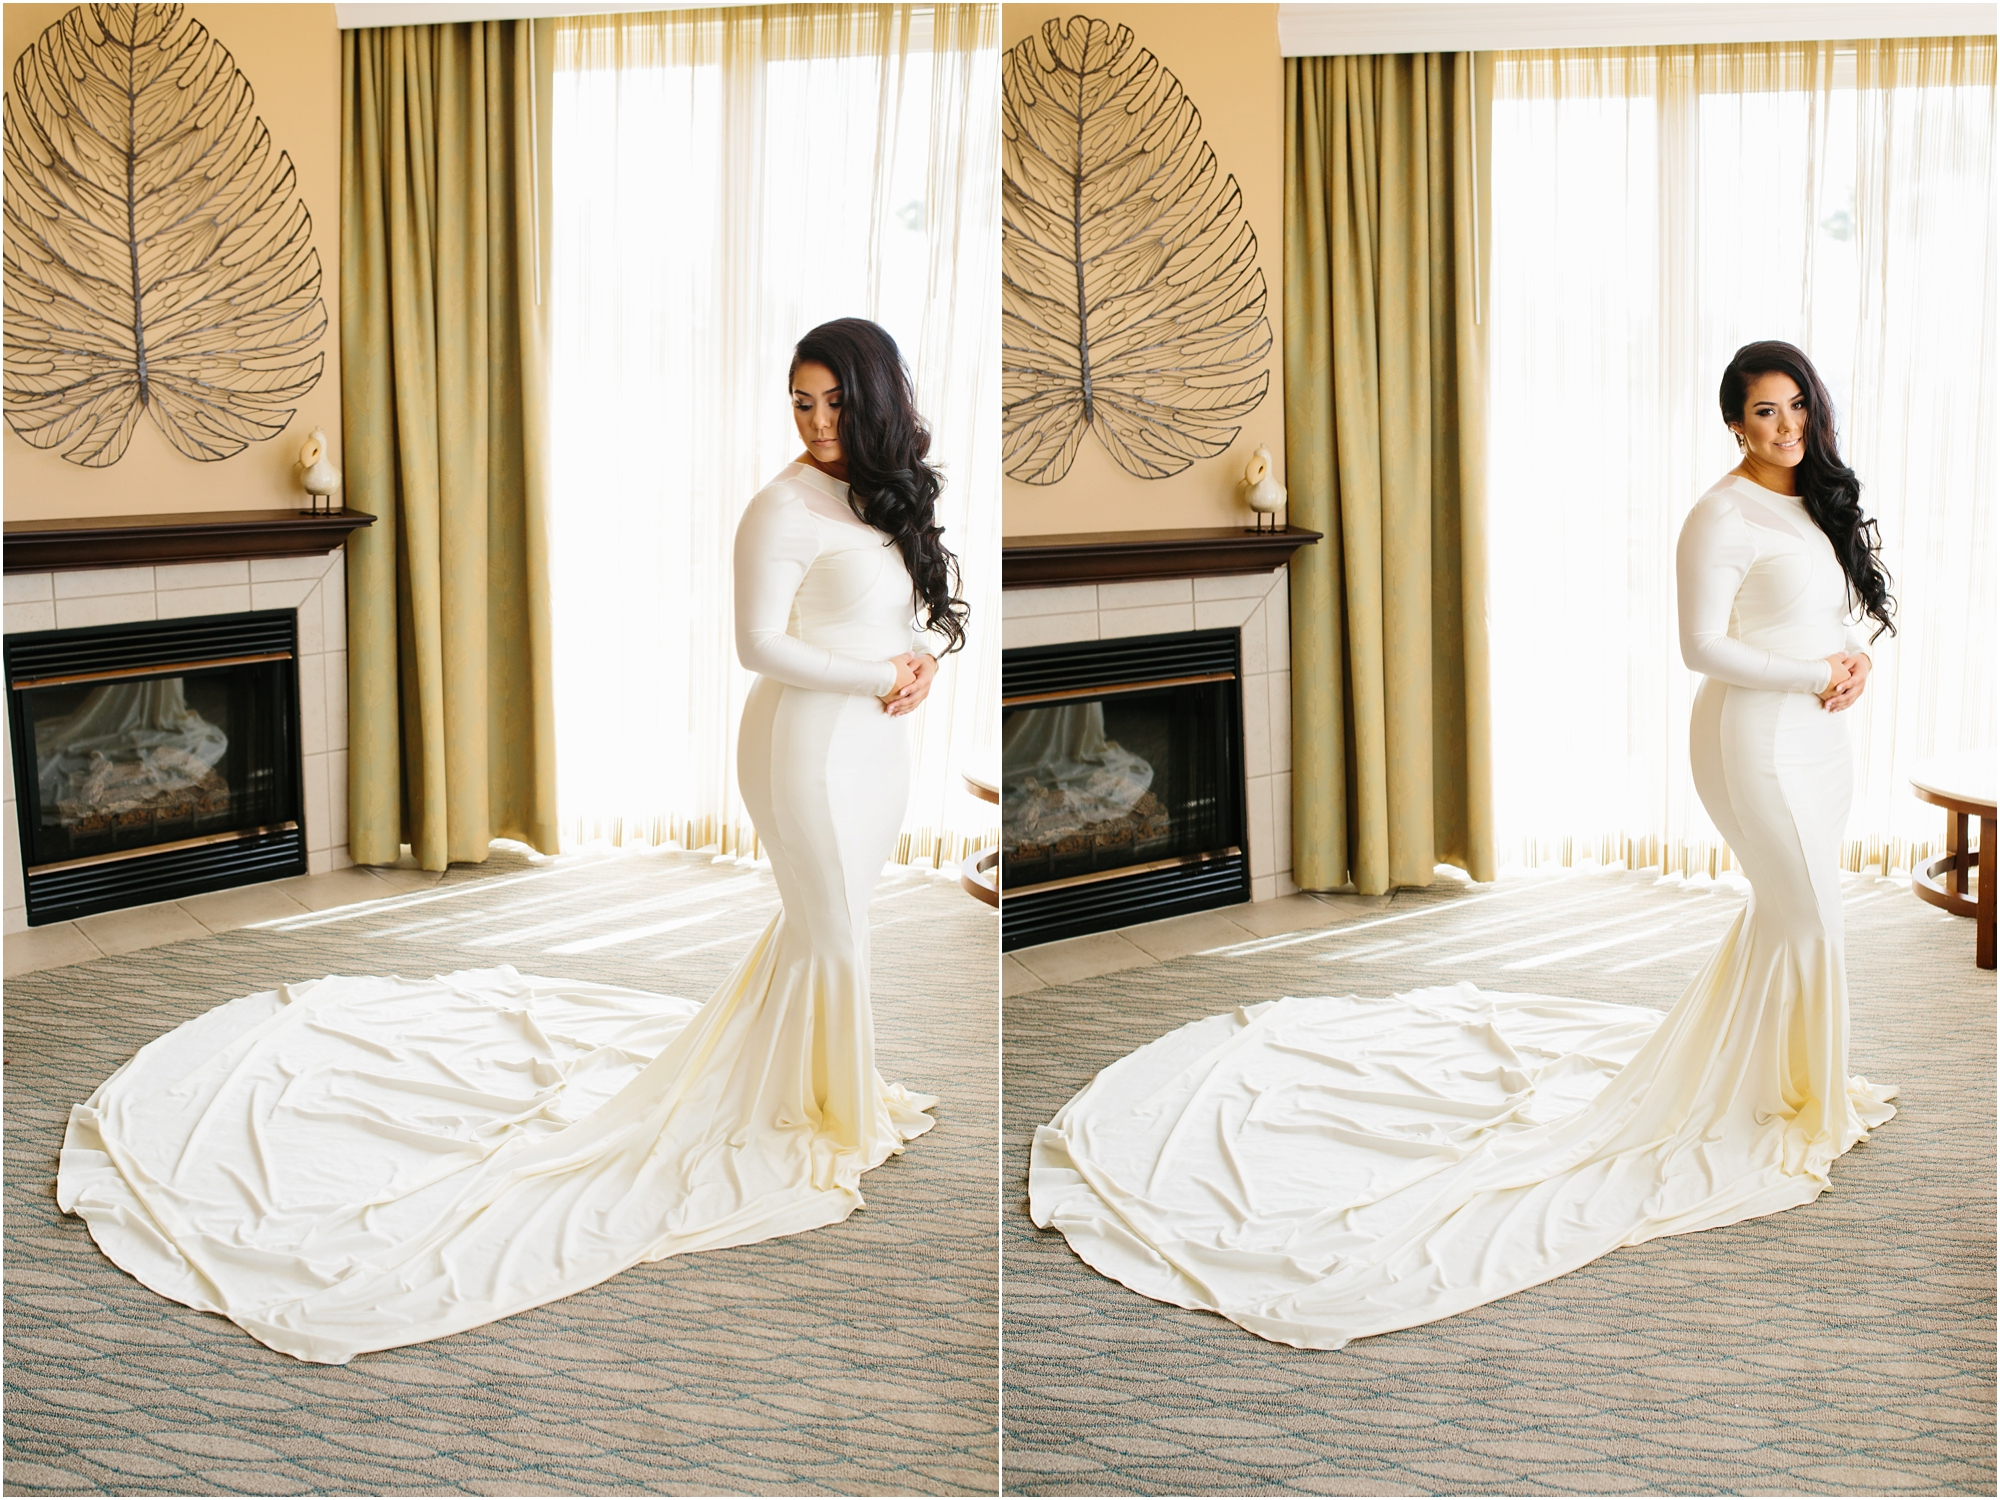 Beautiful Bride - http://brittneyhannonphotography.com